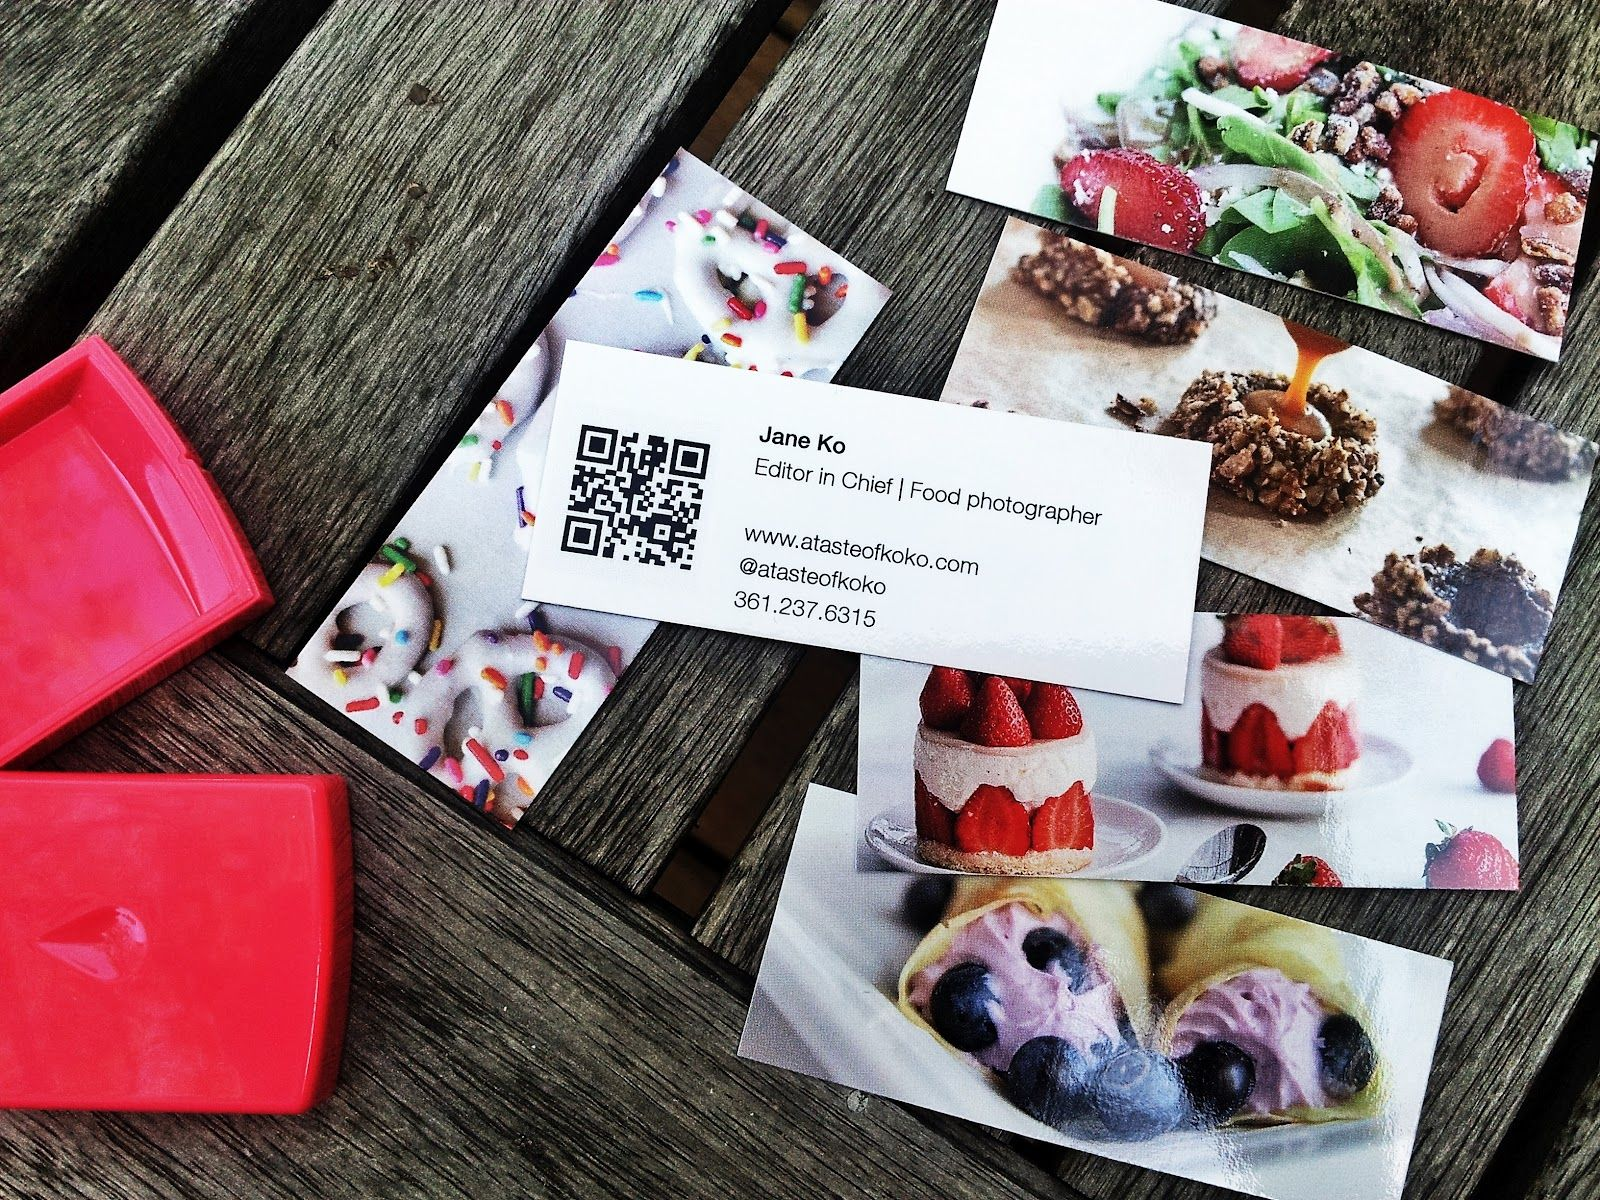 Yummy Food Blogger Business Card | Blogger Business Cards ...